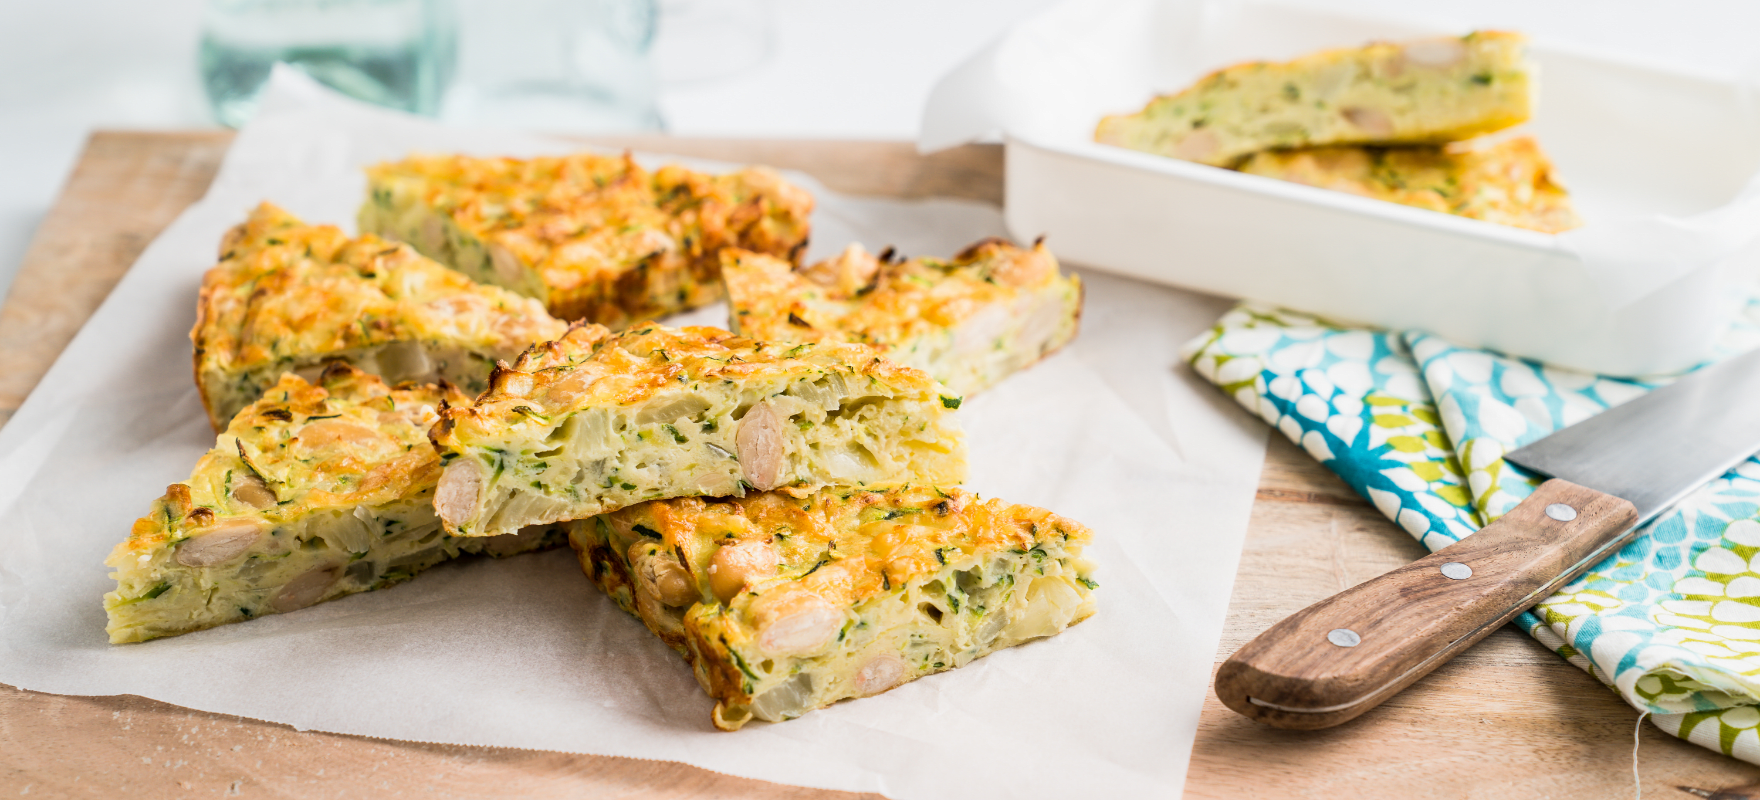 Courgette slice with butter beans image 1